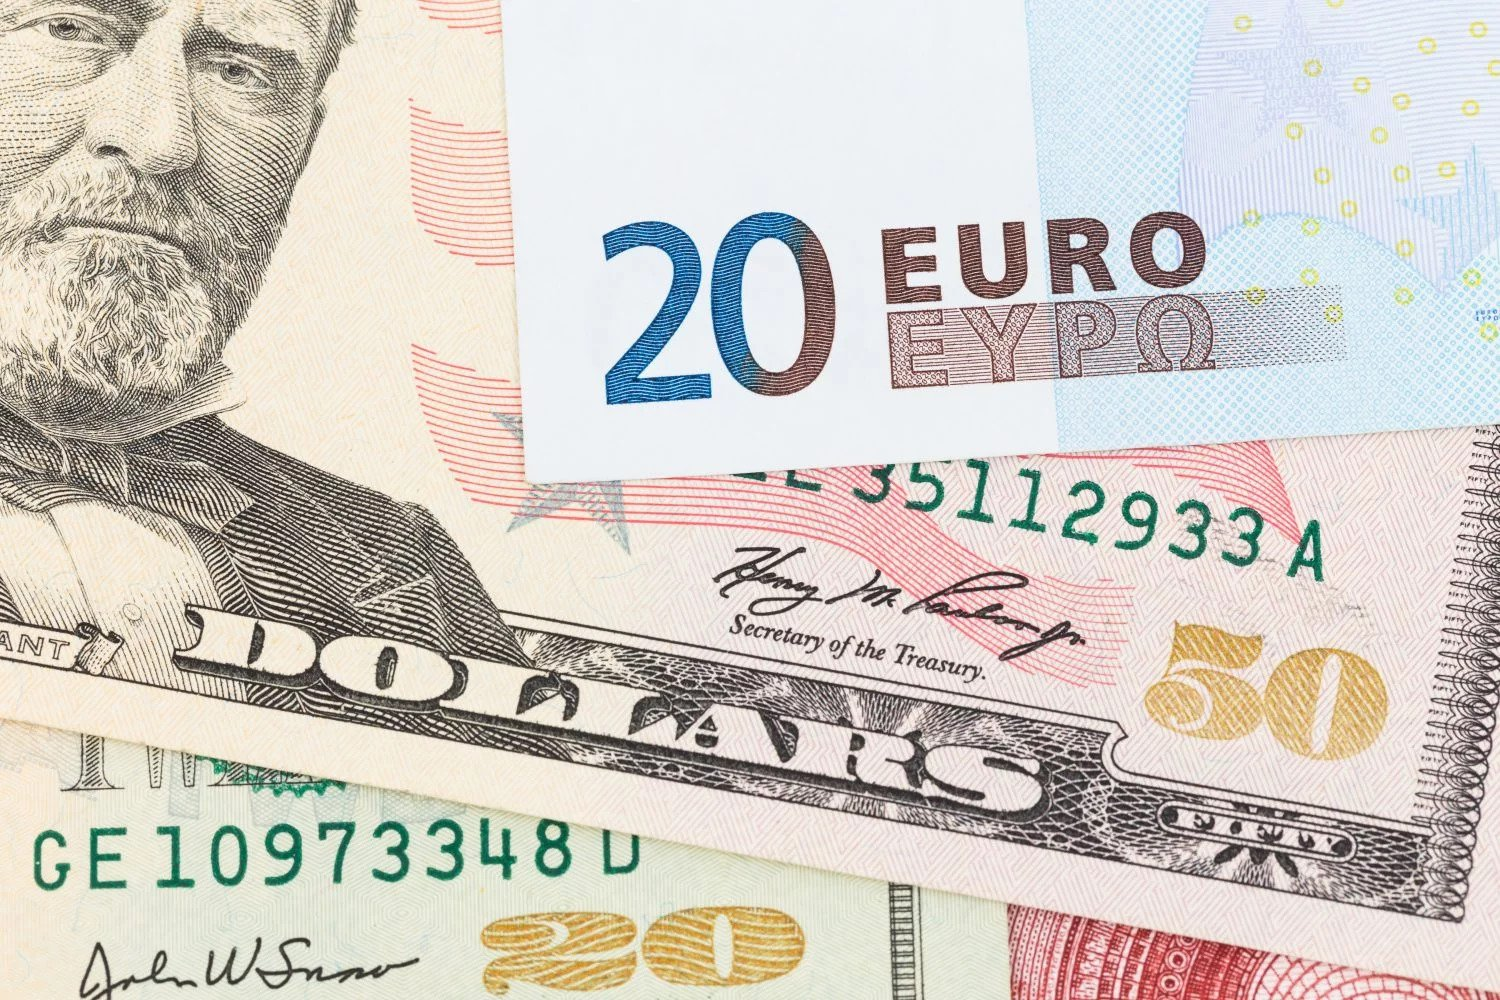 Fiat Currencies Are About to Become Essential to Public Blockchains